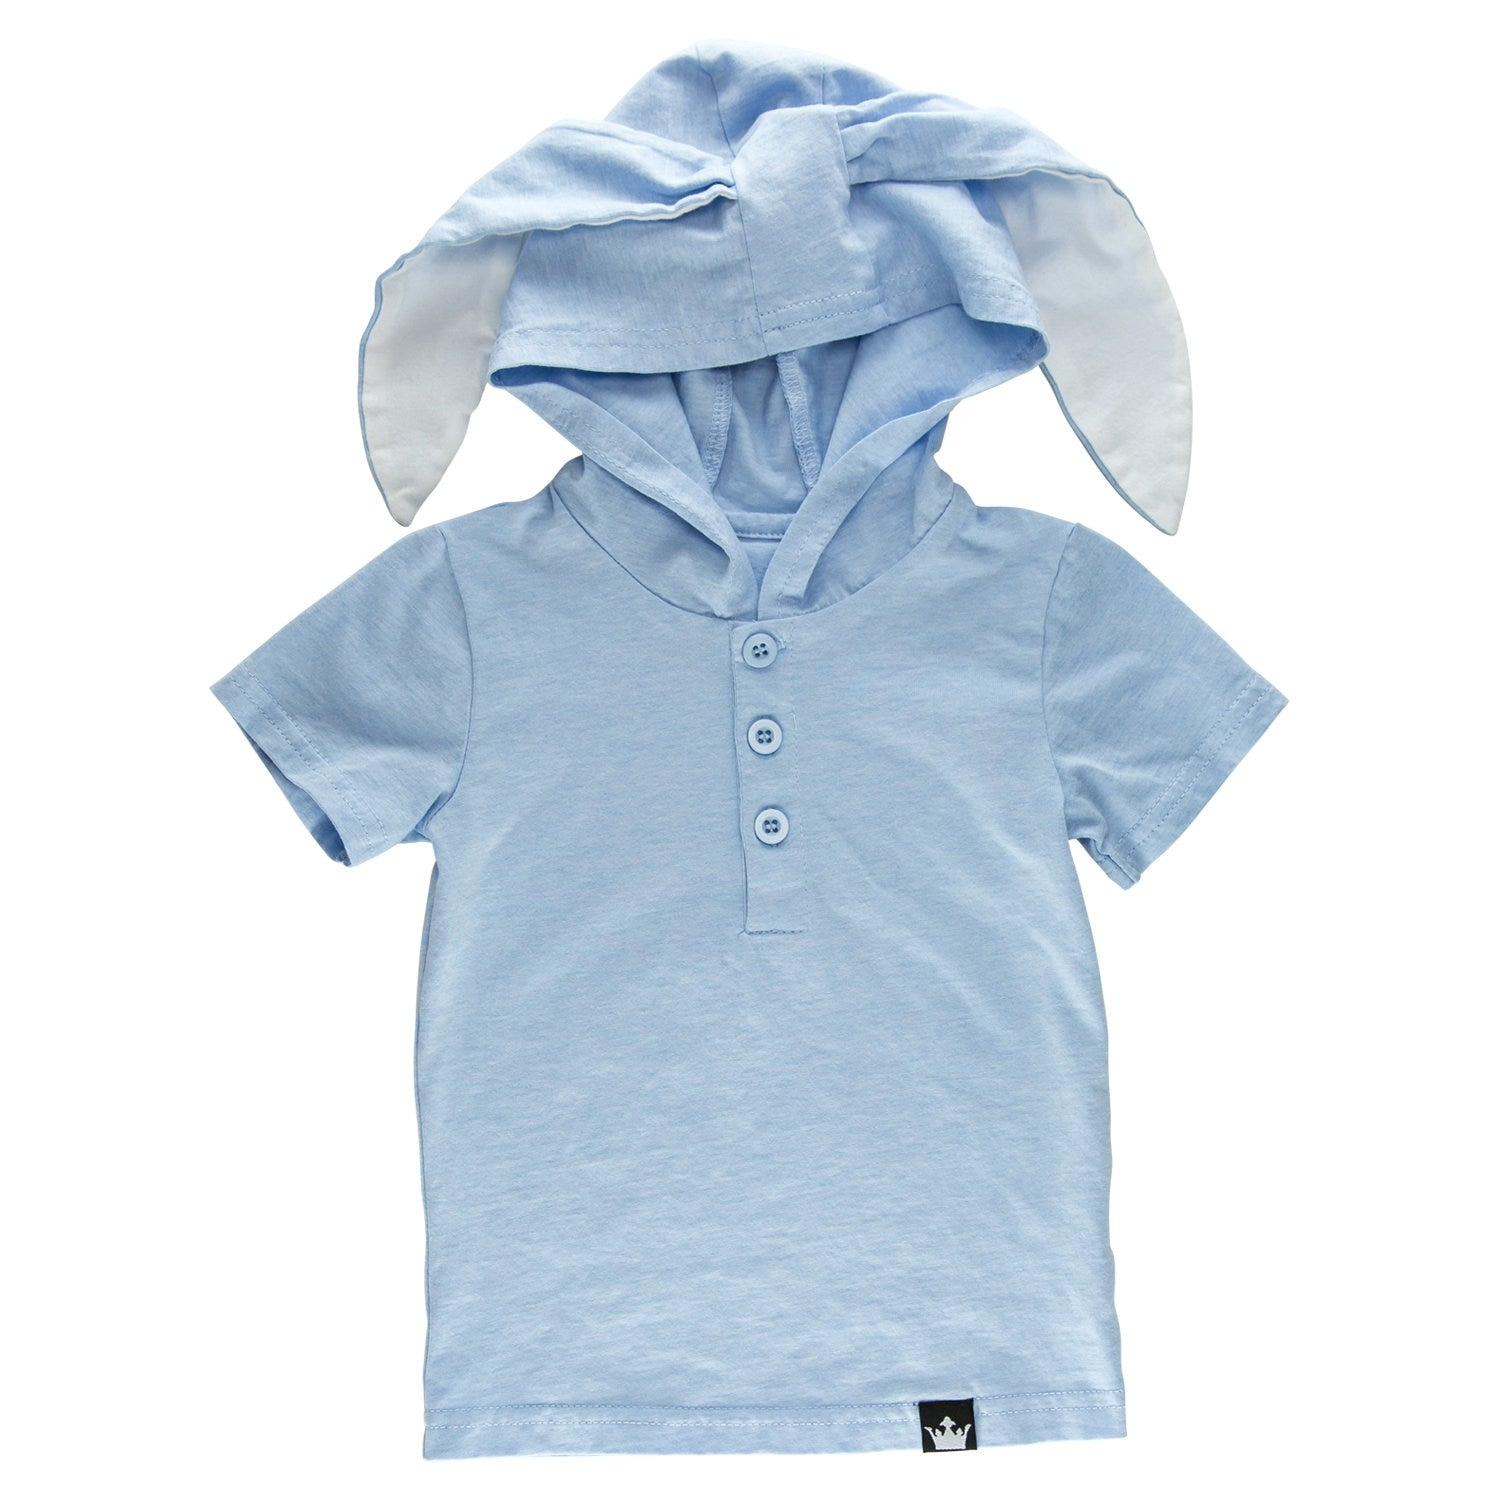 bhs-bb-baby-blue-bunny-hoodie-shirt-front-product.jpg